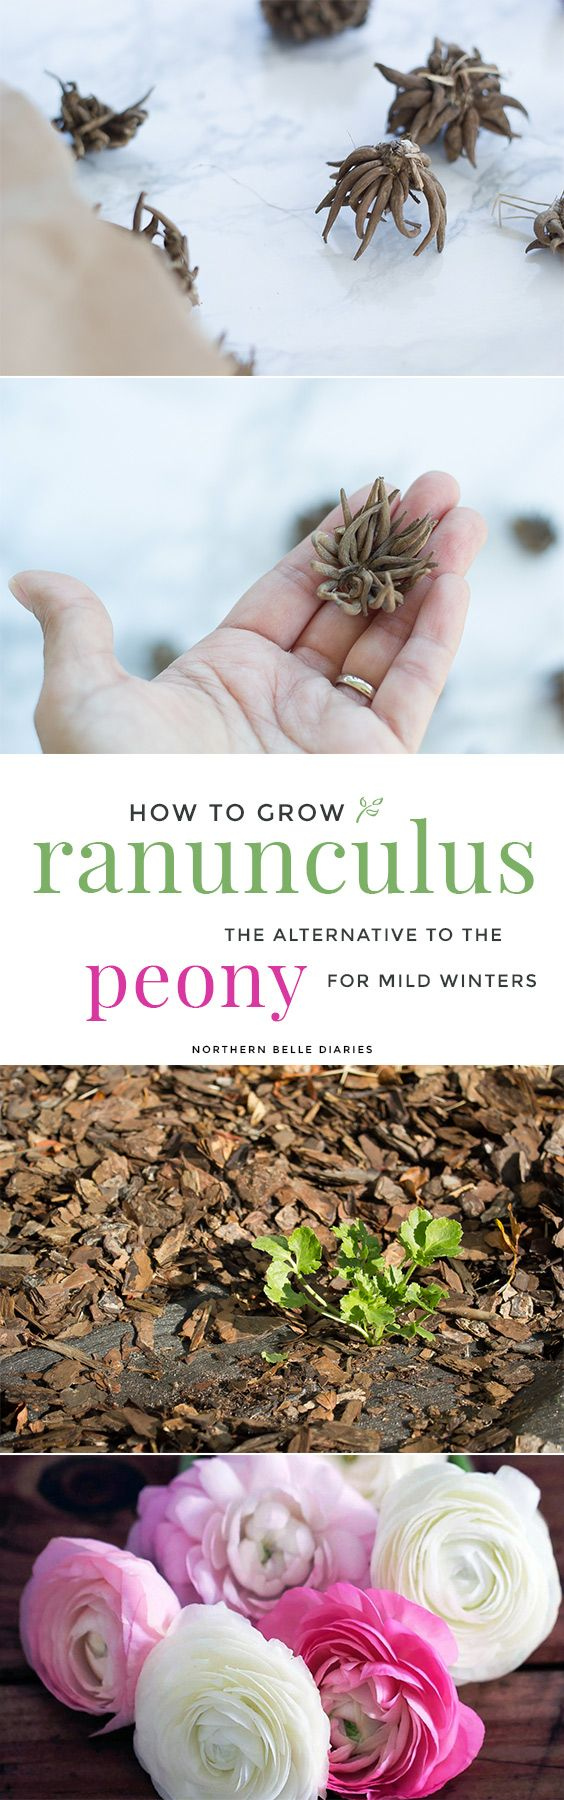 How to Grow Ranunculus | The Alternative to Peonies for Mild Winters - Do you love peonies and want to grow them in your garden but live in warm coastal areas? Try planting ranunculus, aka Persian buttercups. Inexpensive and long-blooming, your vases will be overflowing for weeks! Sponsored by Dunkin' Donuts. #DunkinAtHome #BakerySeries #ad